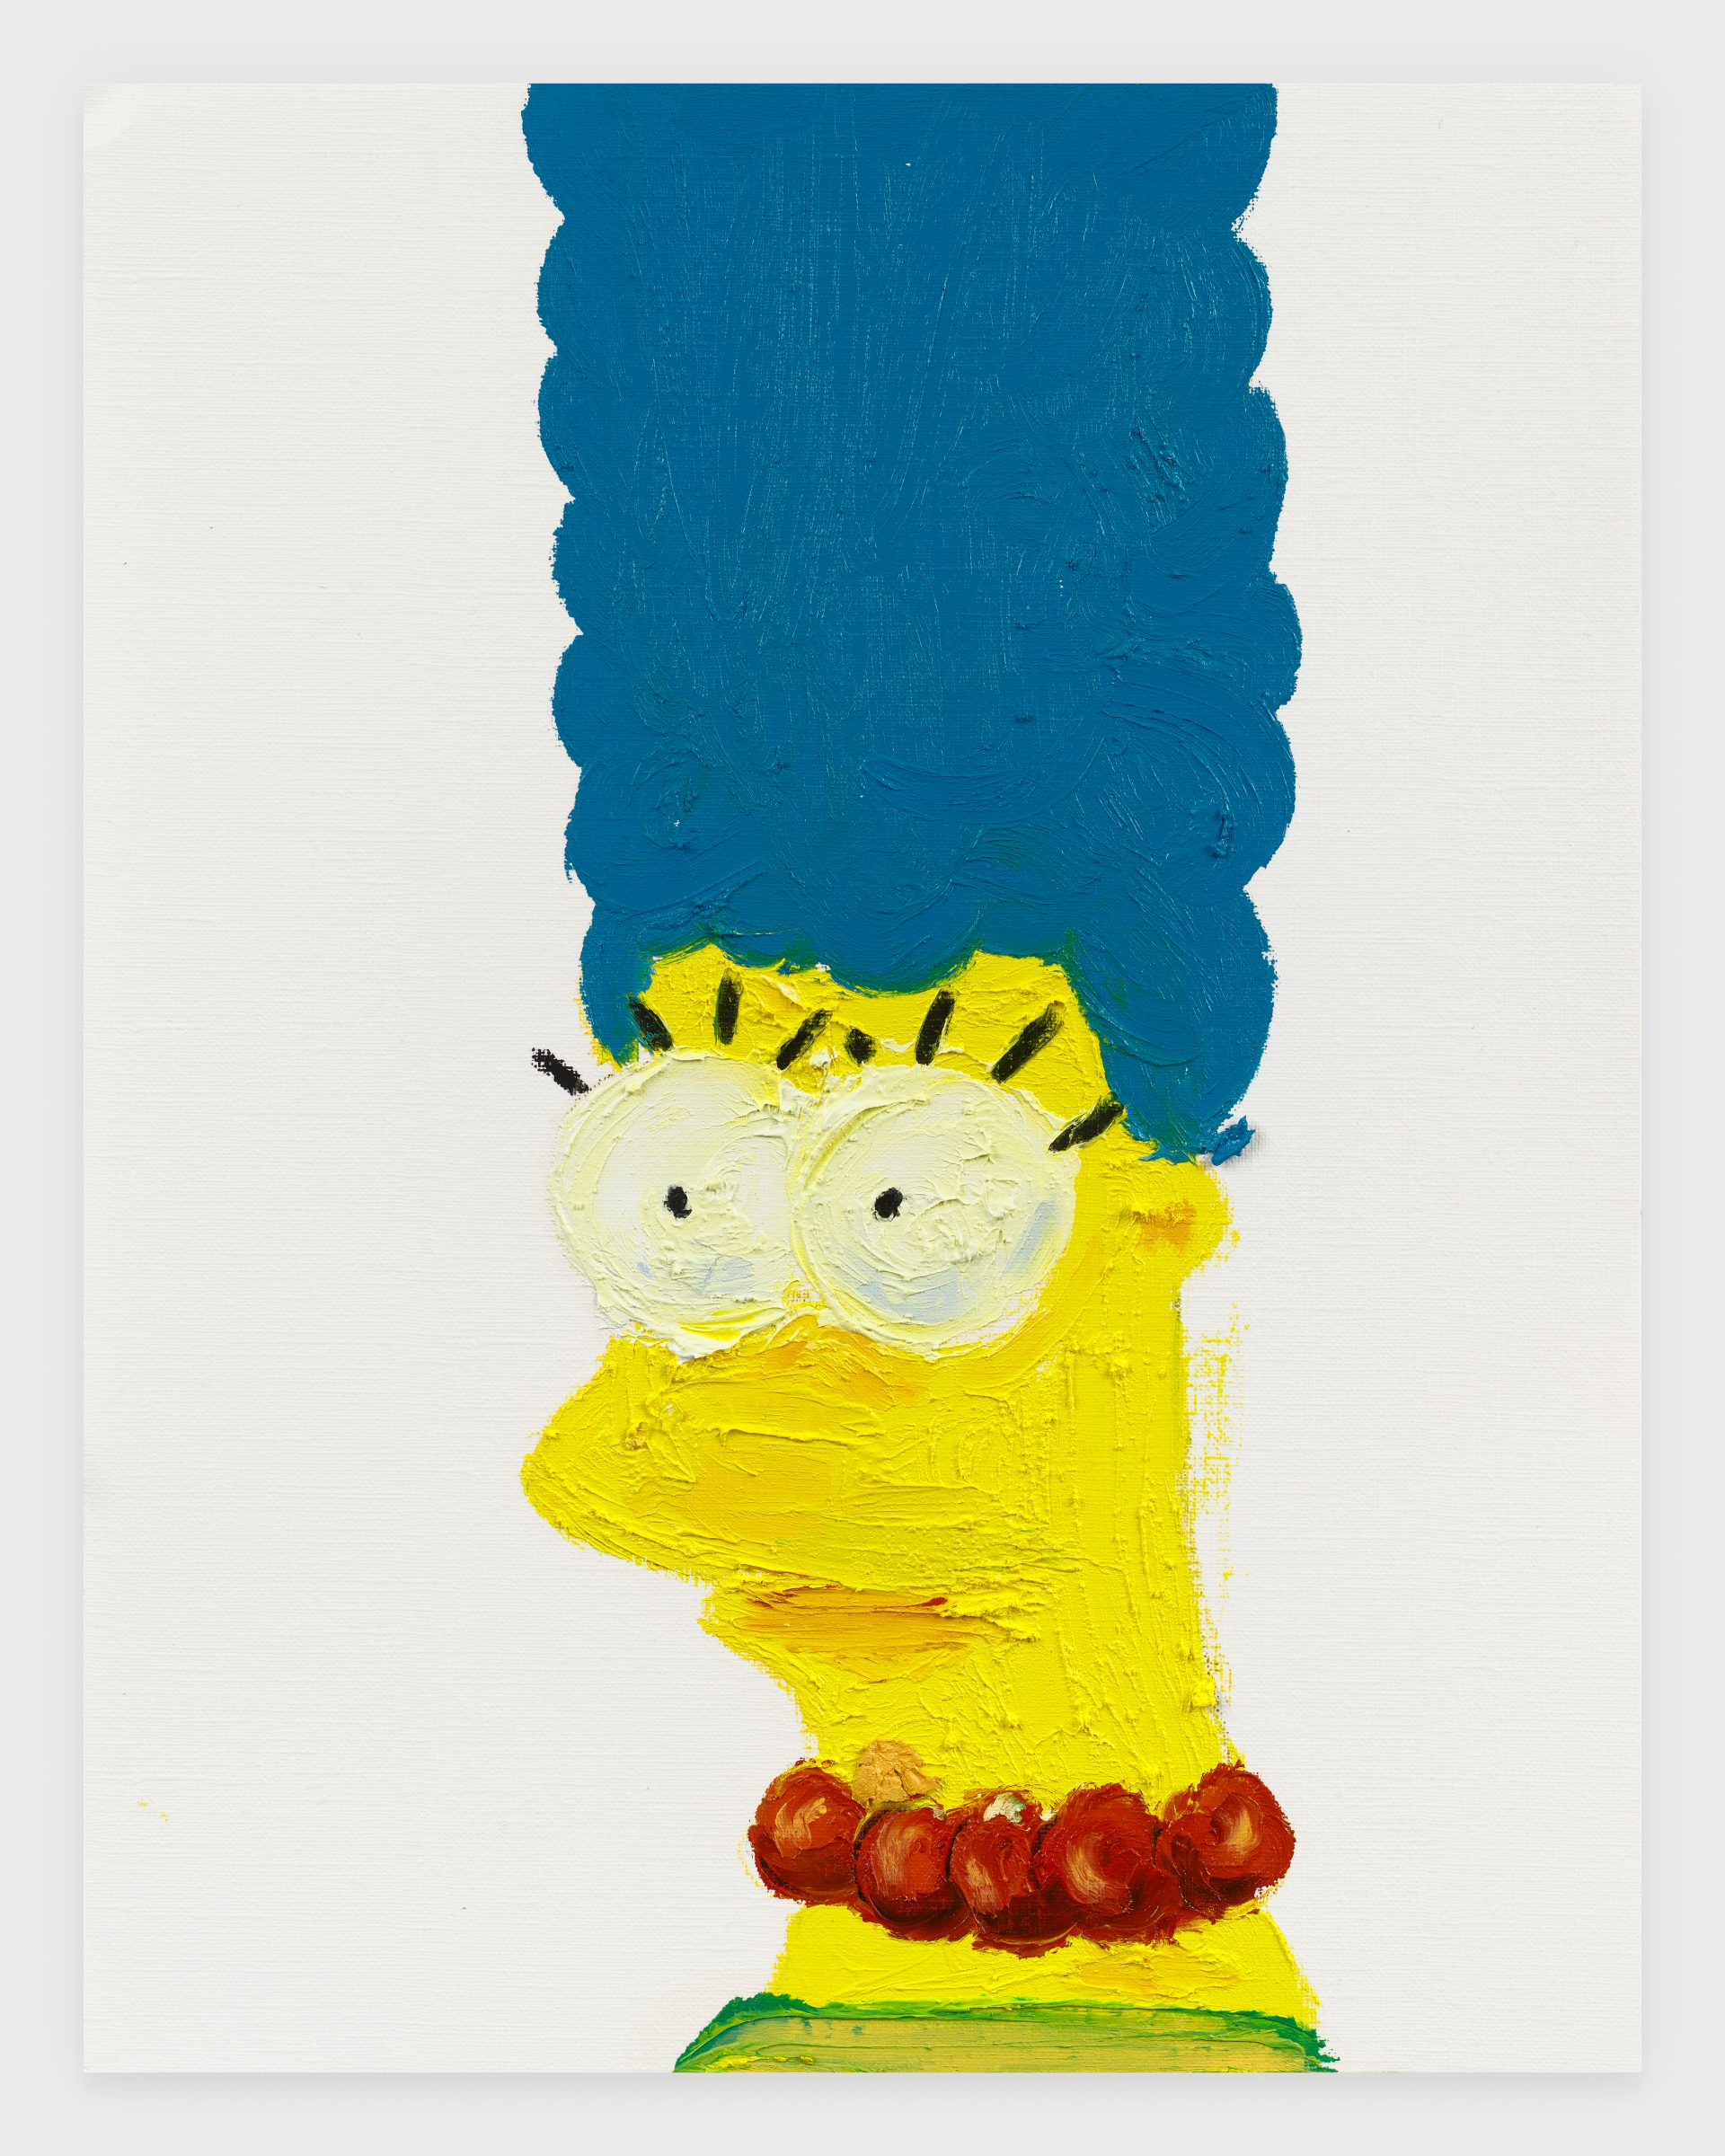 Marge, 2020, Oil stick on archival paper, 11 x 14 inches